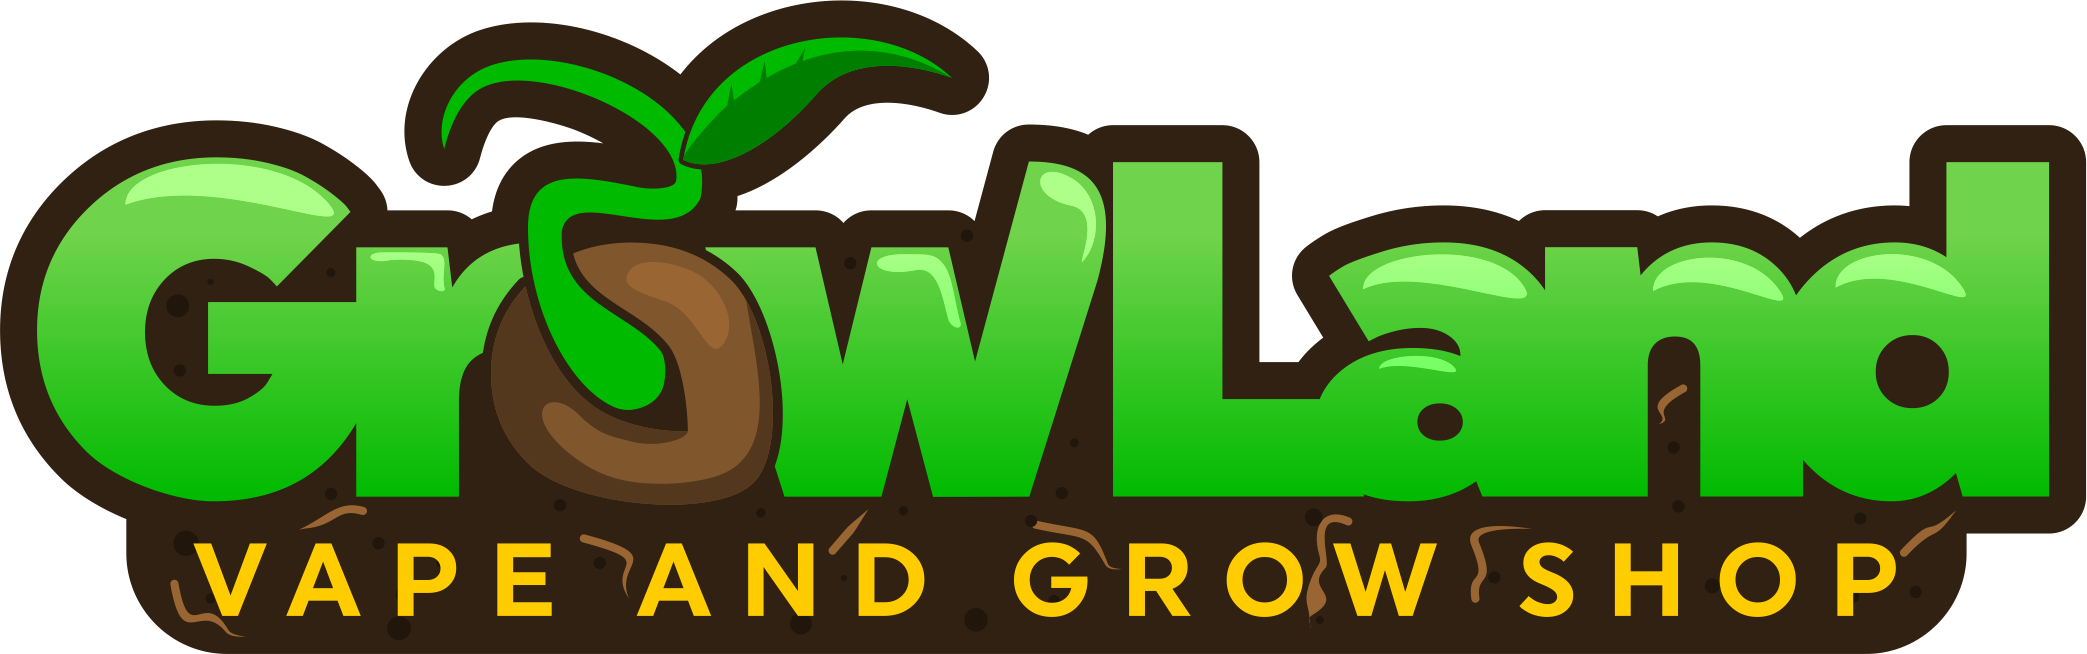 Growland Chile